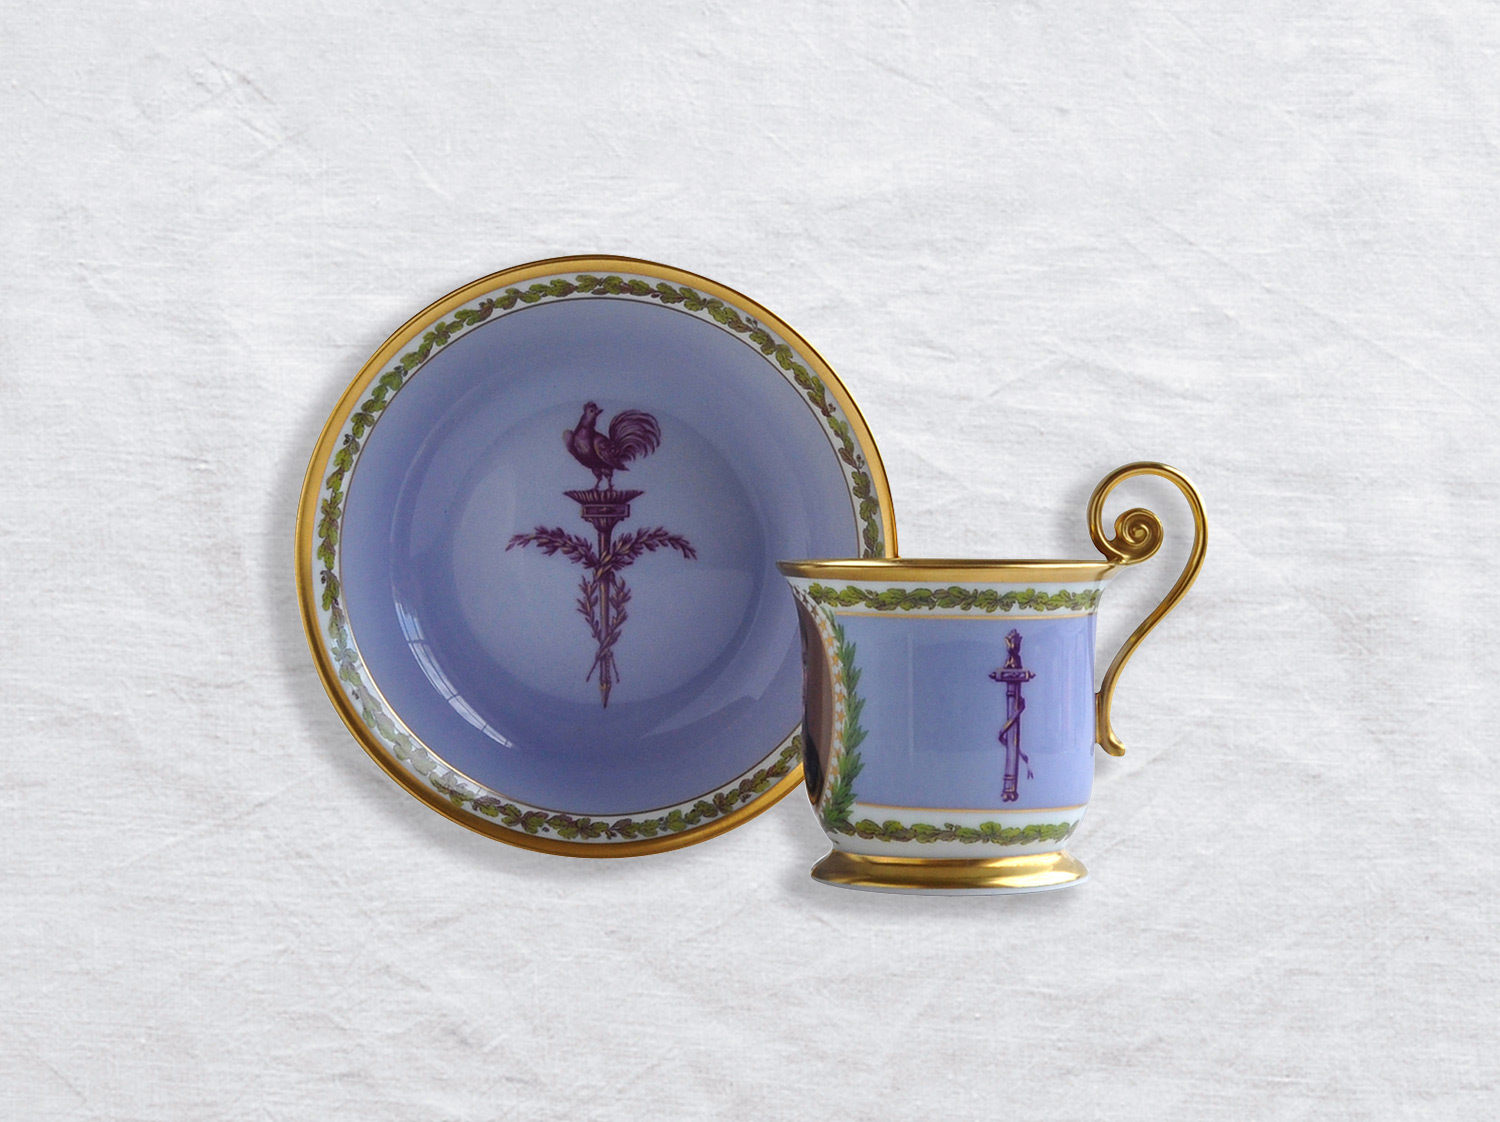 Tasse et soucoupe Empire en porcelaine de la collection Bonaparte Bernardaud